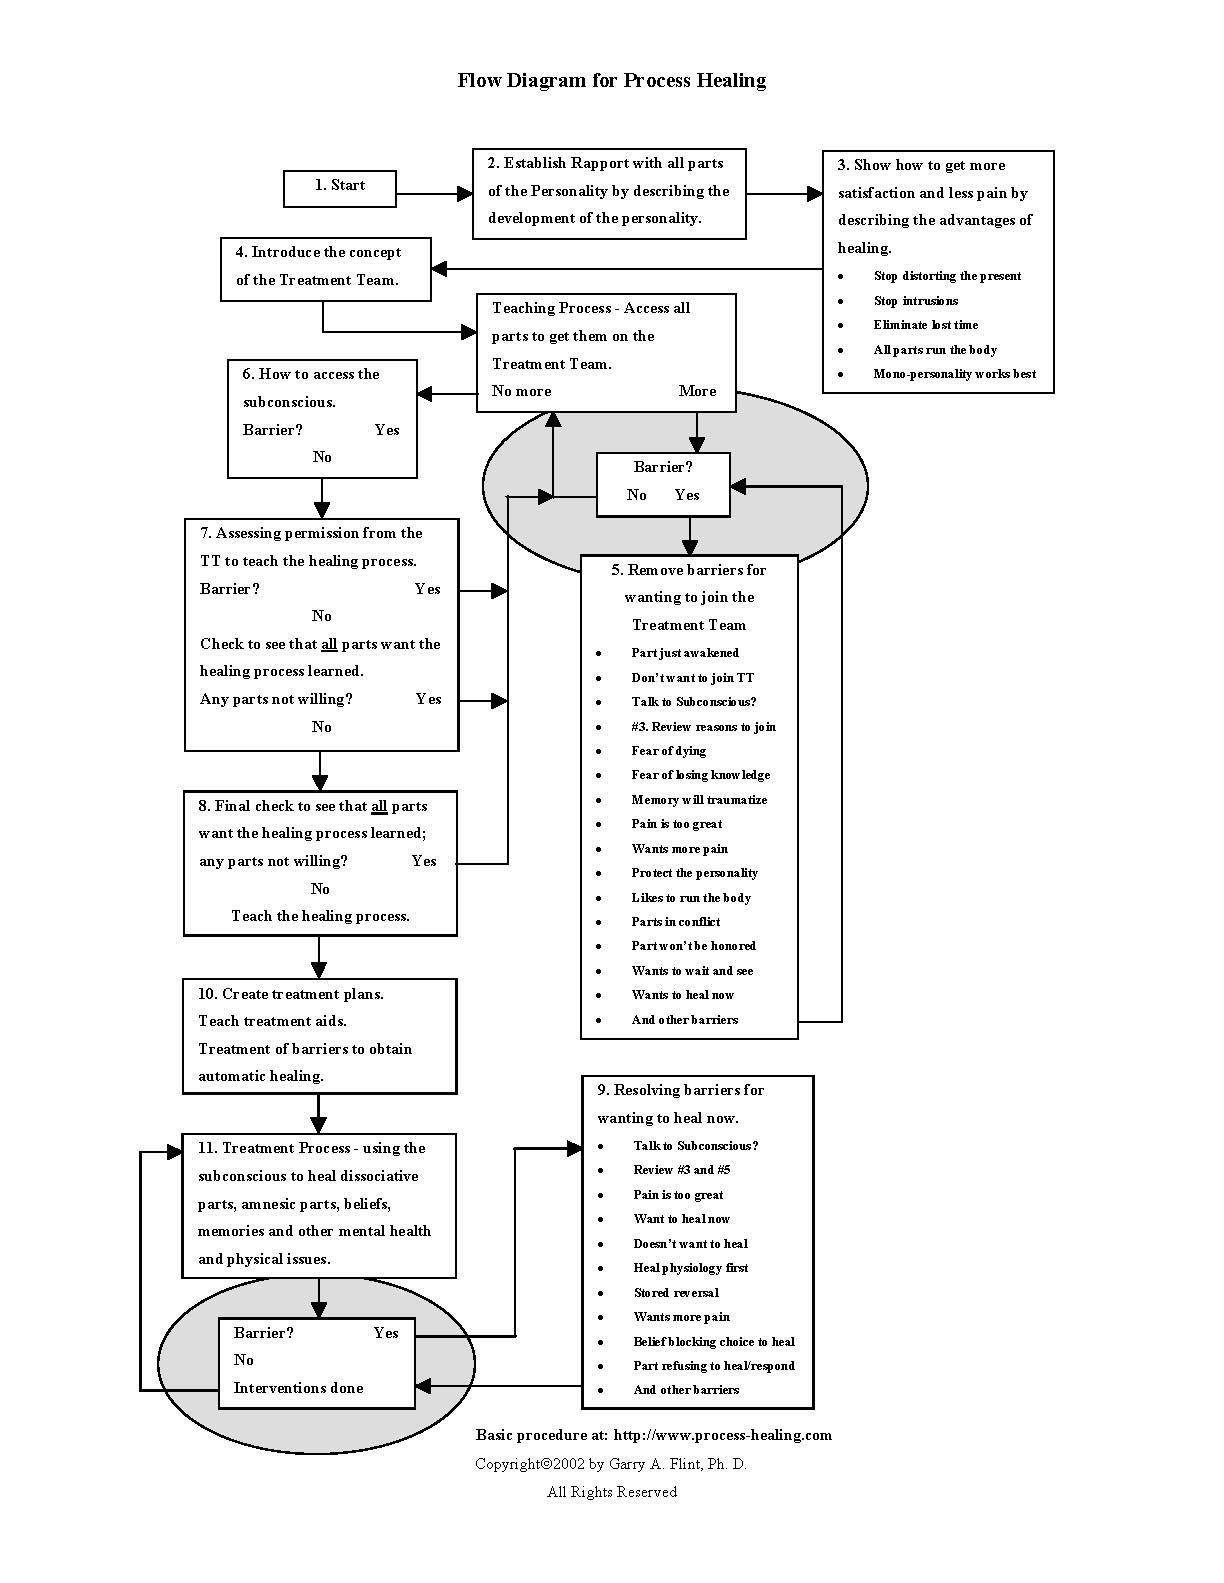 We Refer To It As The Self Process Flow Diagram Yes No For Healing 171143 Bytes